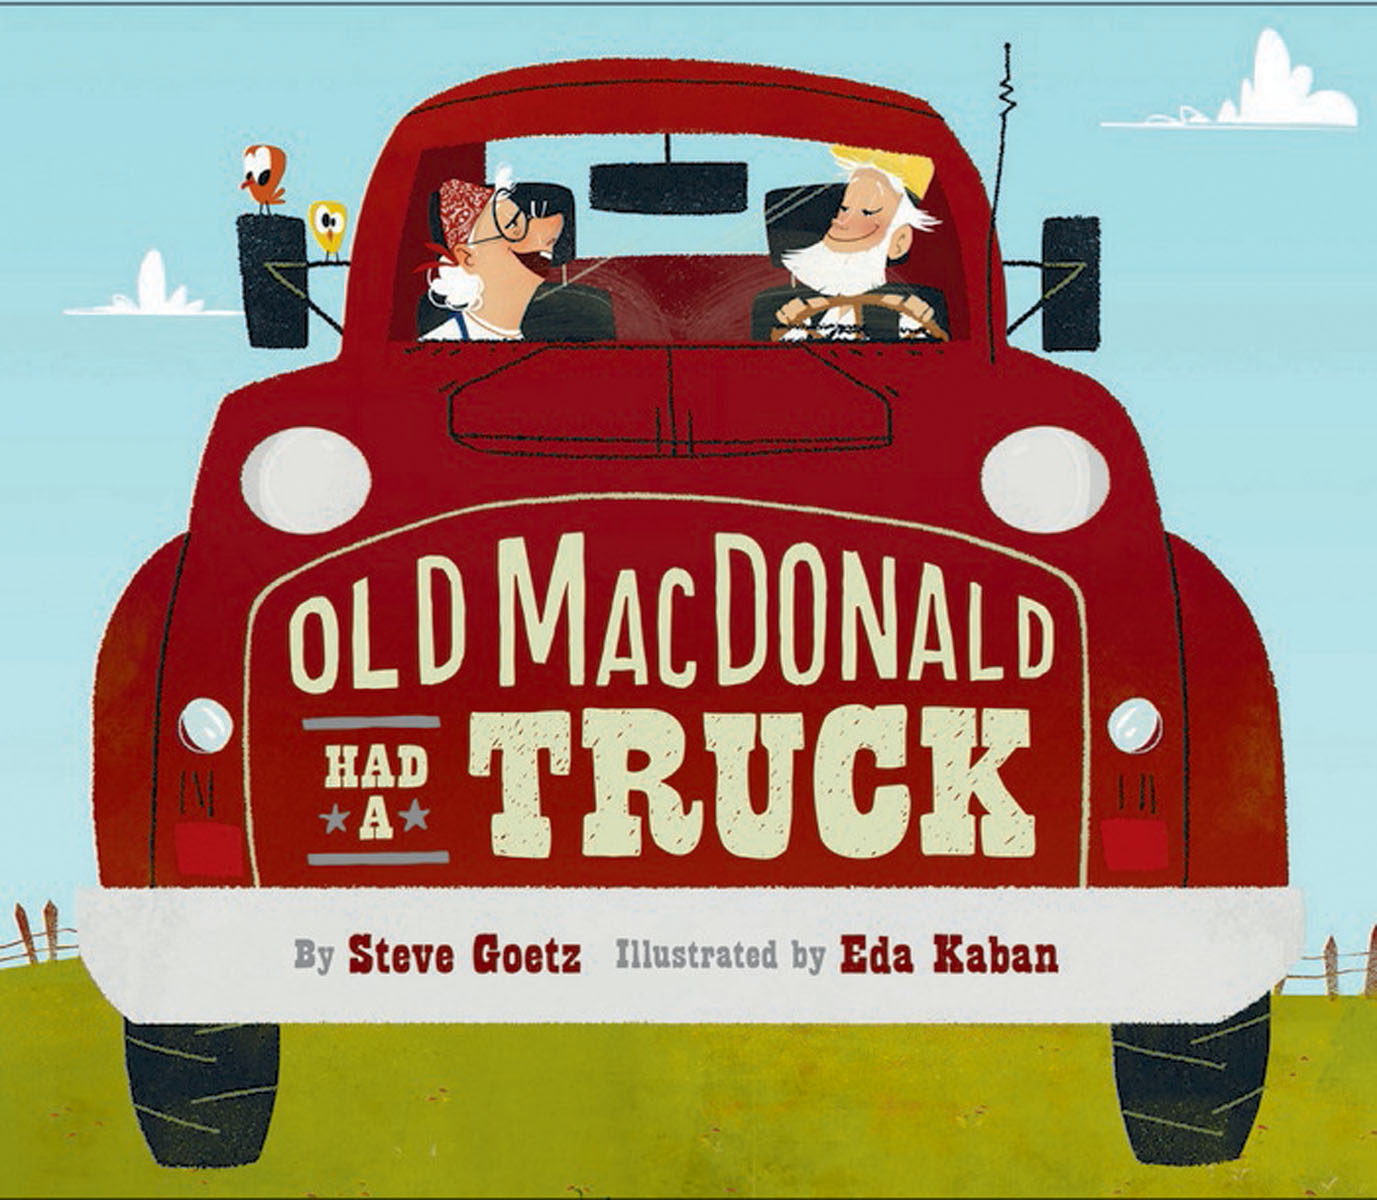 Old MacDonald Had a Truck monsters of folk monsters of folk monsters of folk